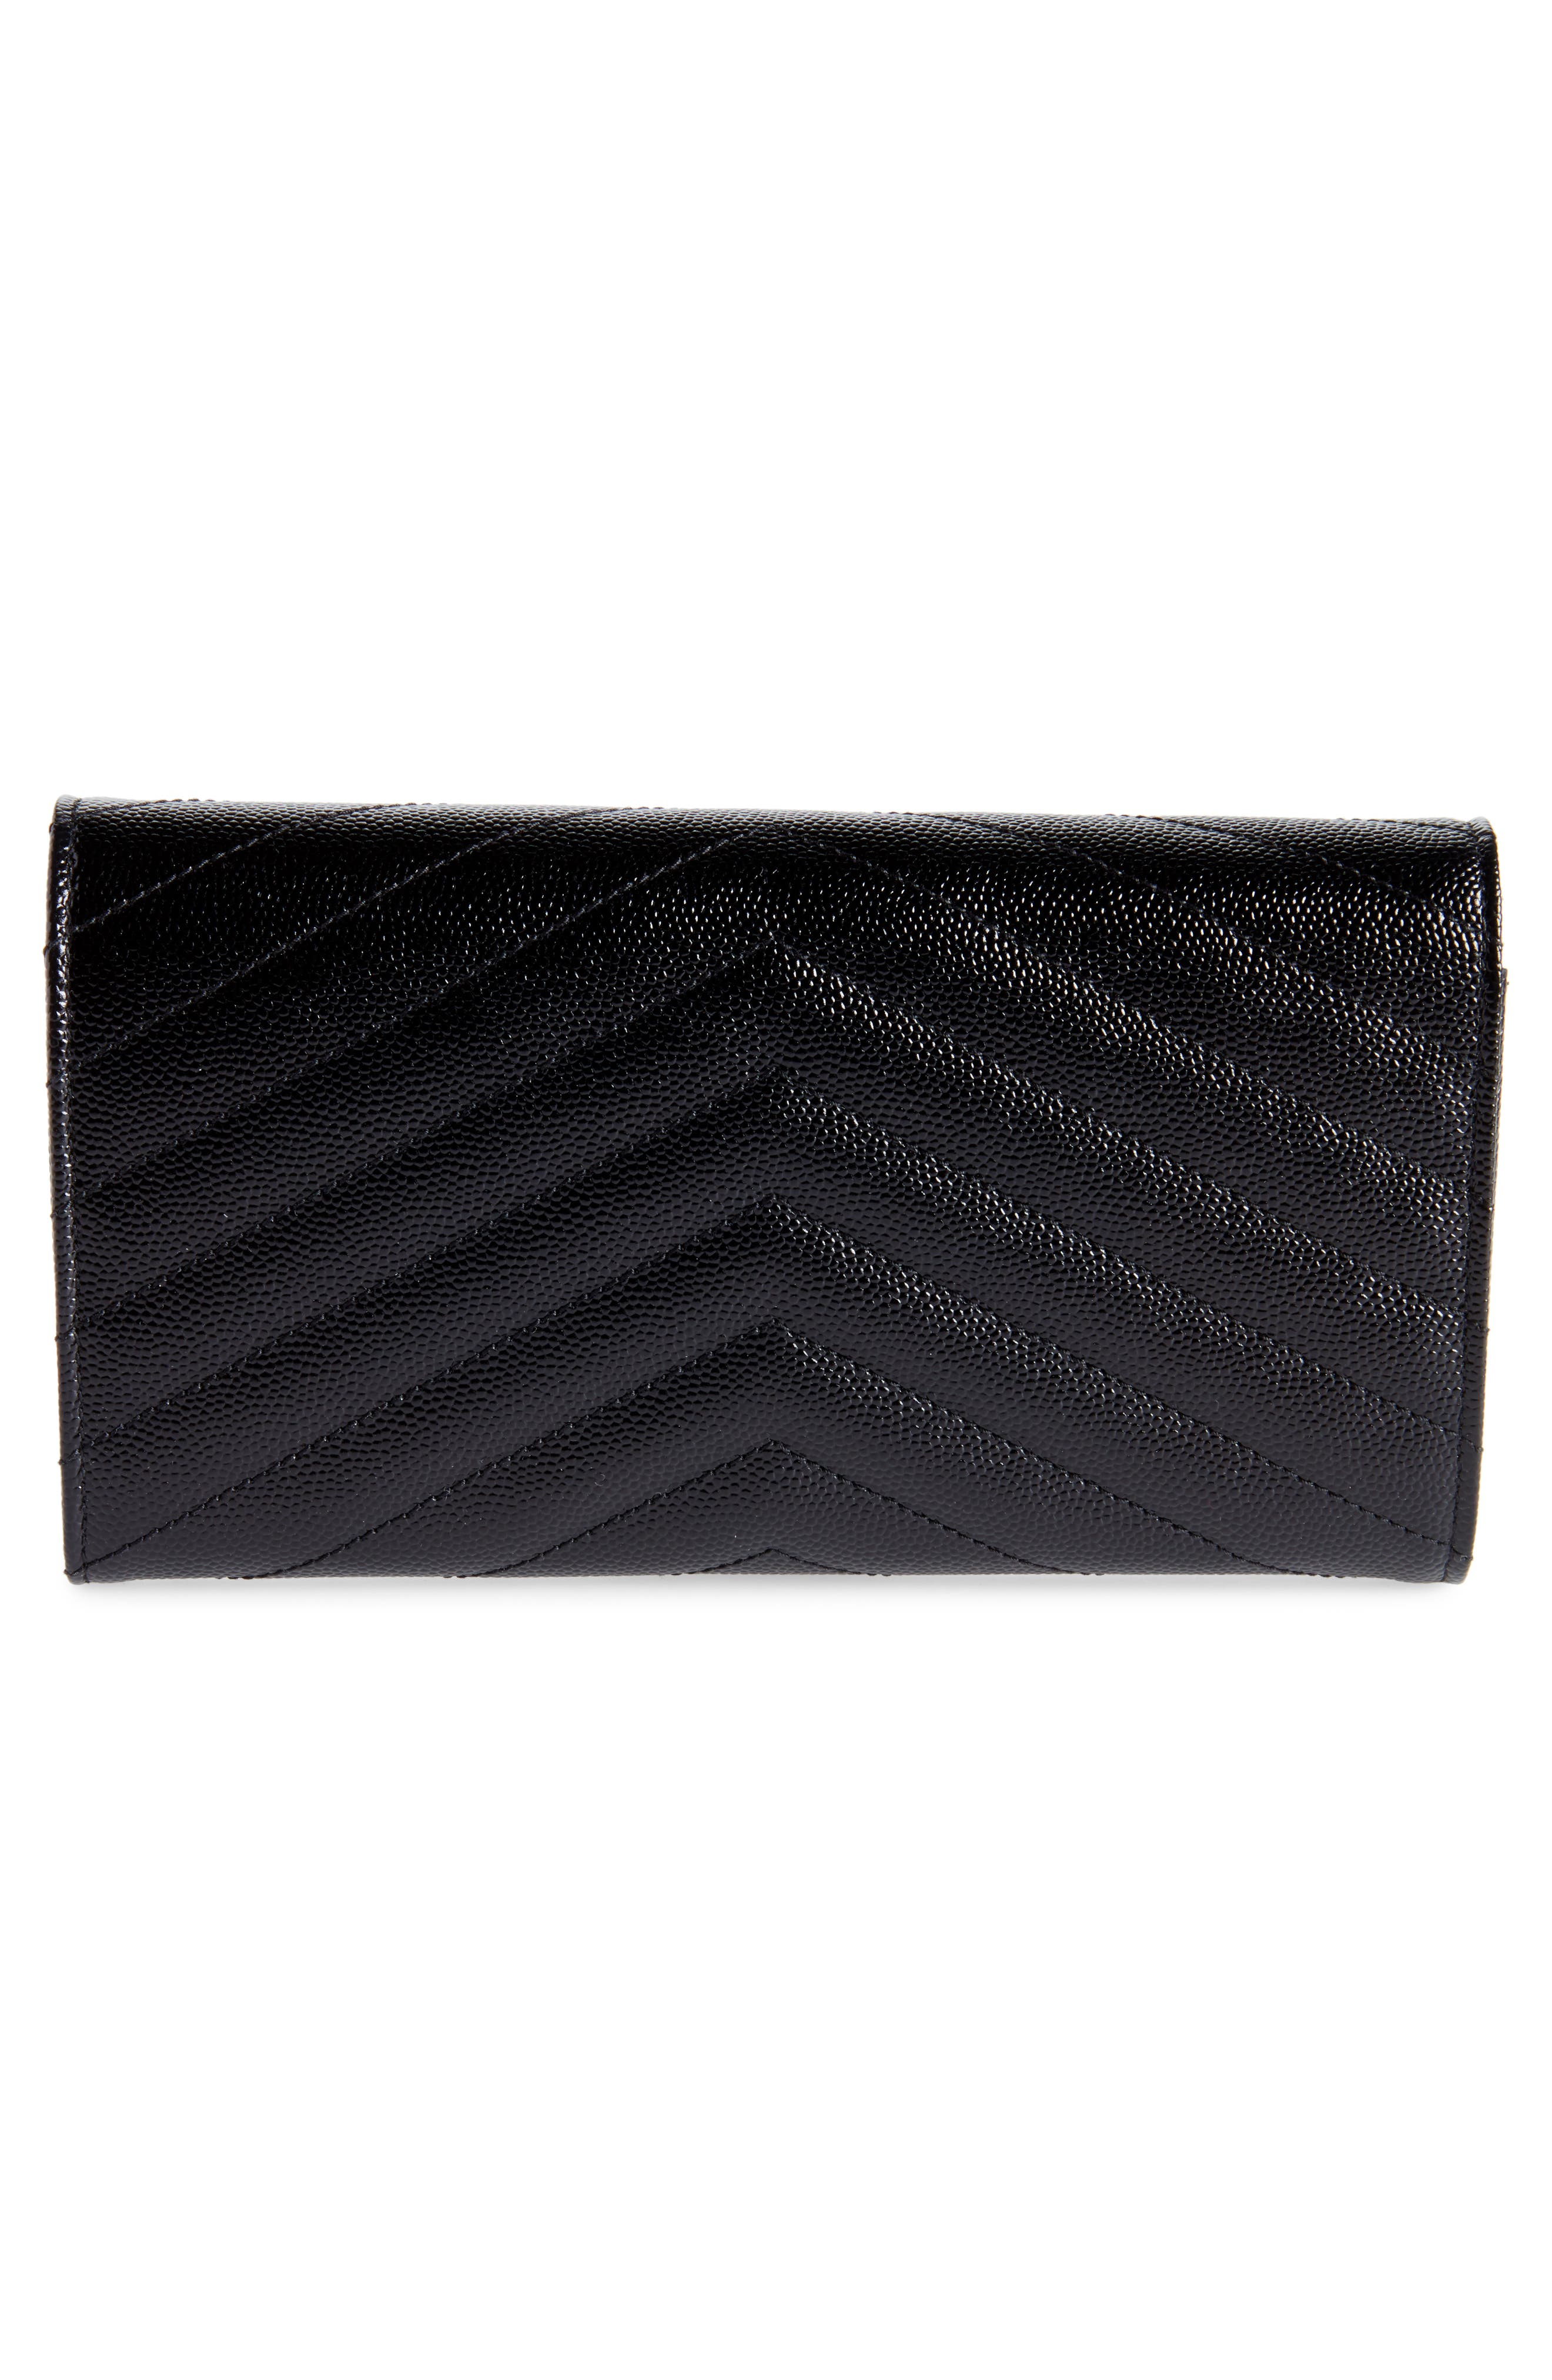 Monogram Logo Leather Flap Wallet,                             Alternate thumbnail 3, color,                             NERO